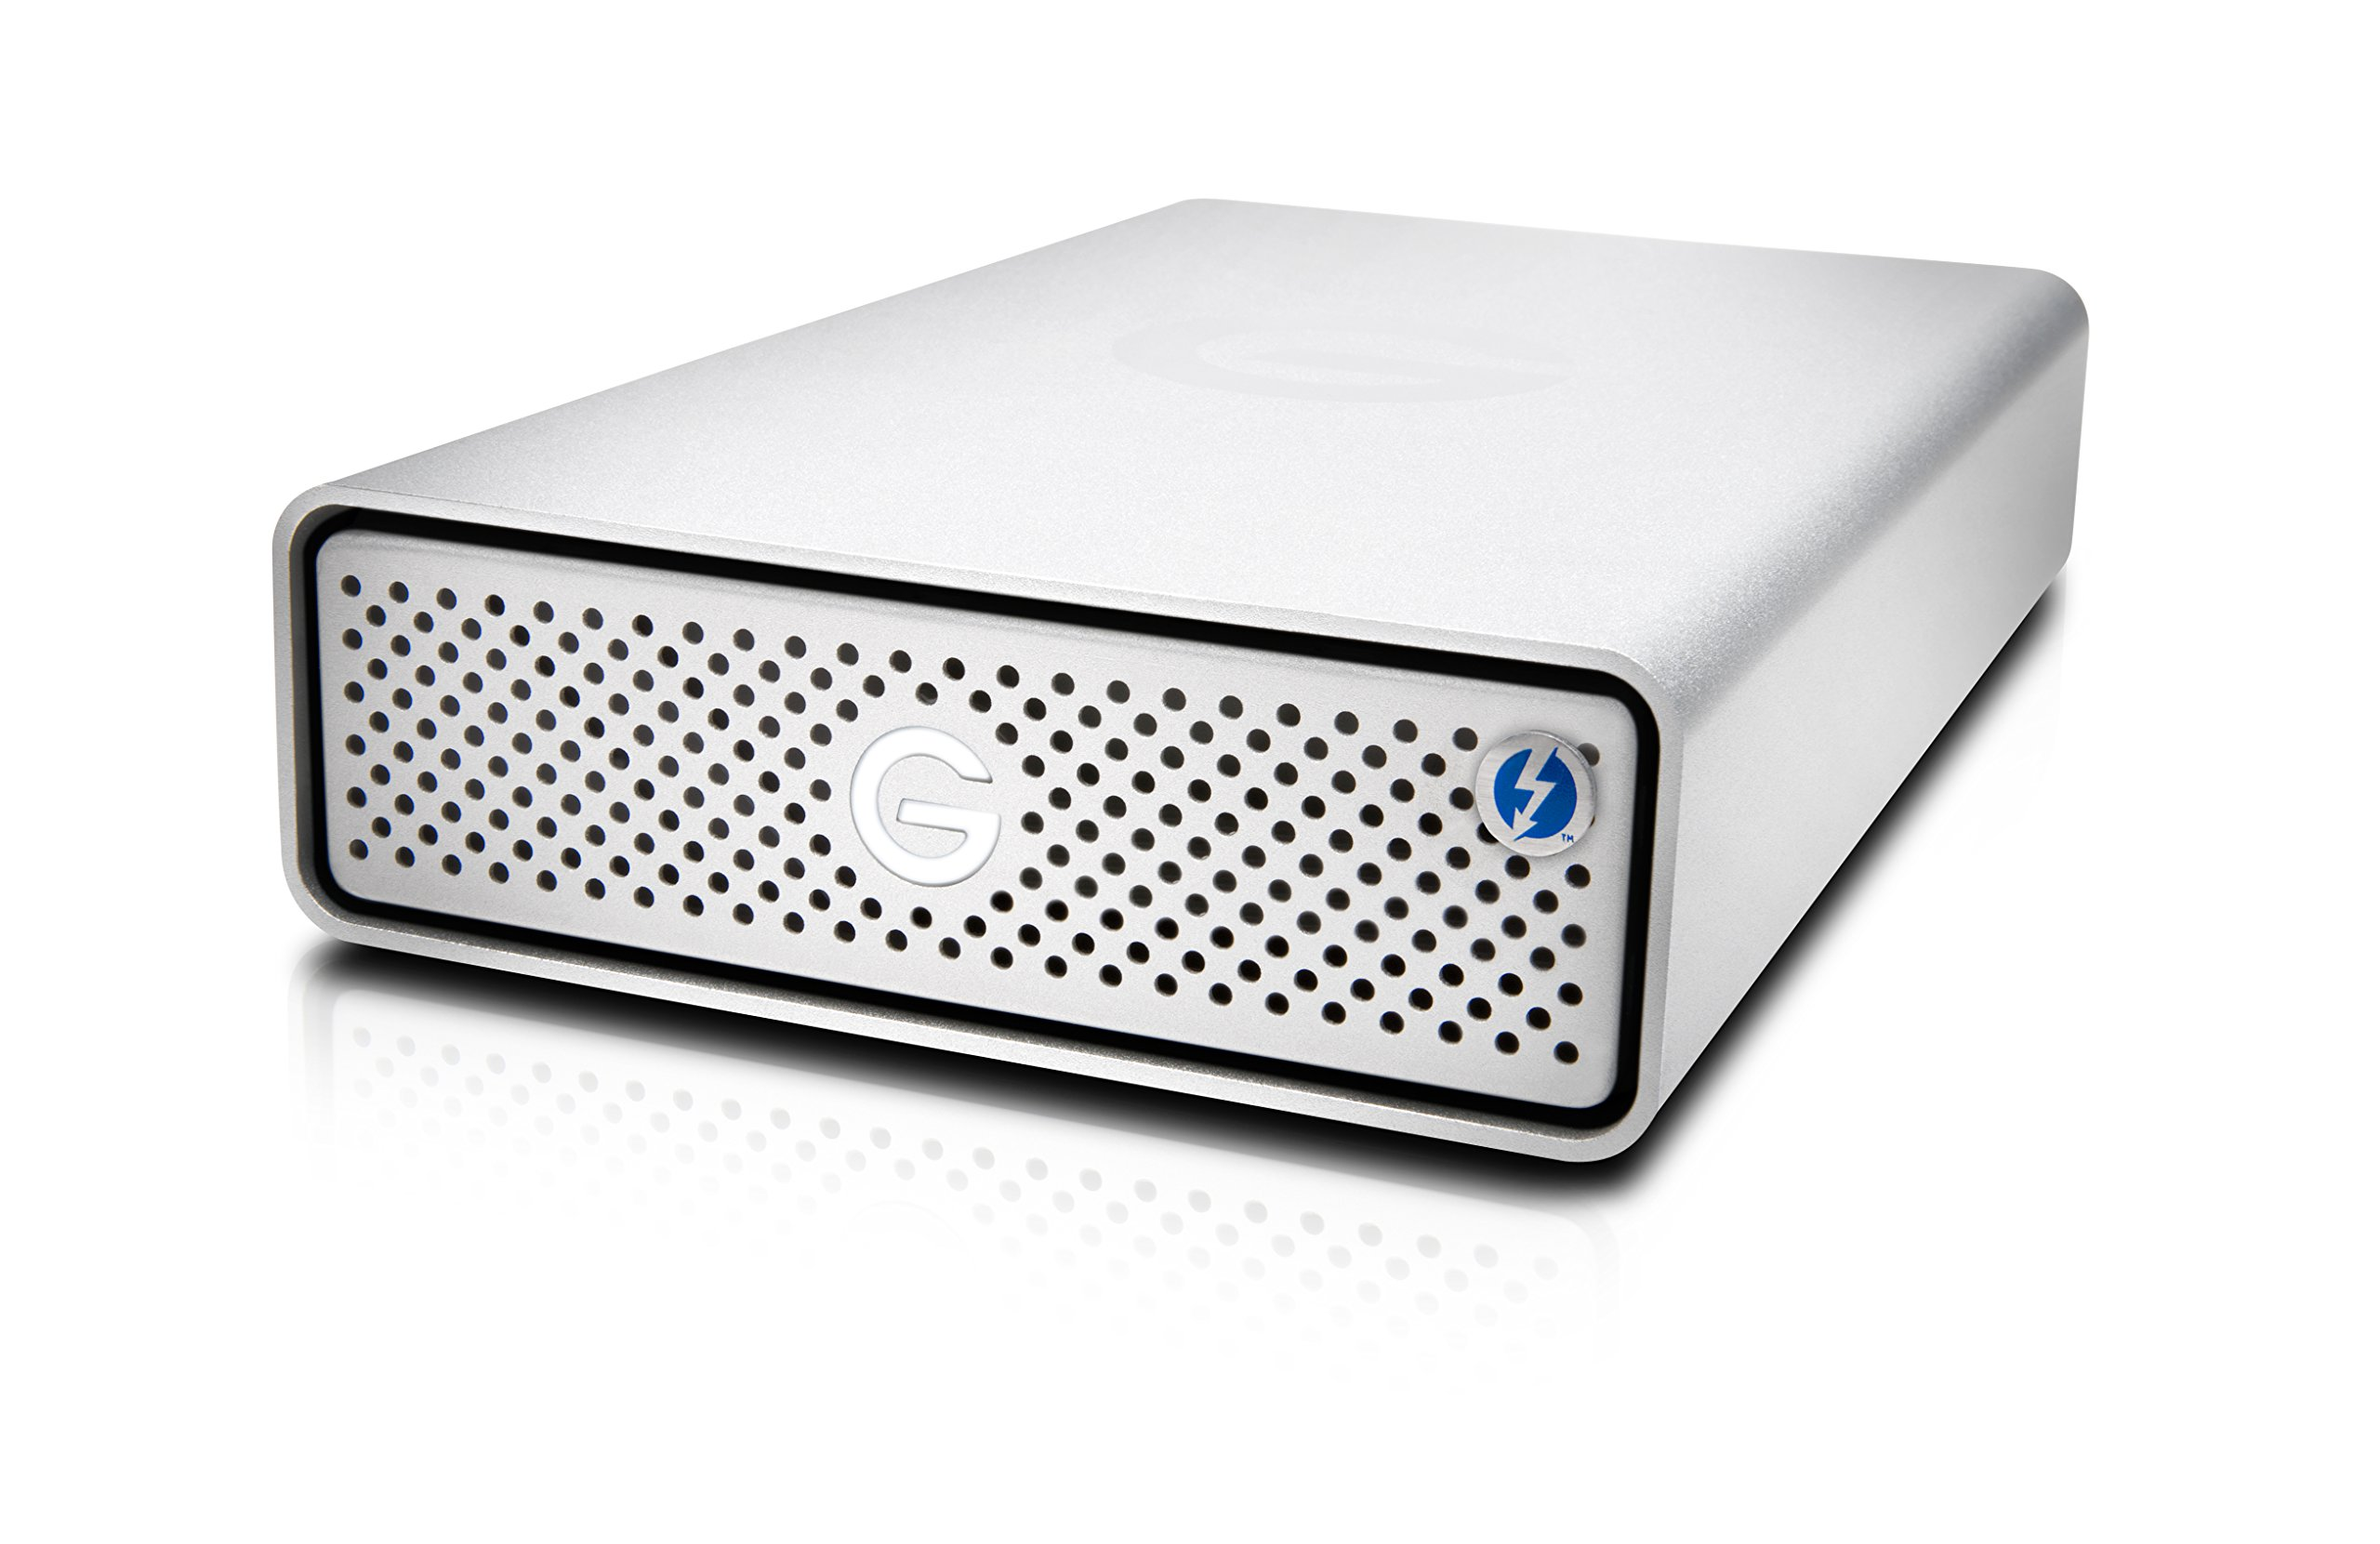 G-Technology 10TB G-DRIVE with Thunderbolt 3 and USB-C Desktop External Hard Drive, Silver - 0G05378 by G-Technology